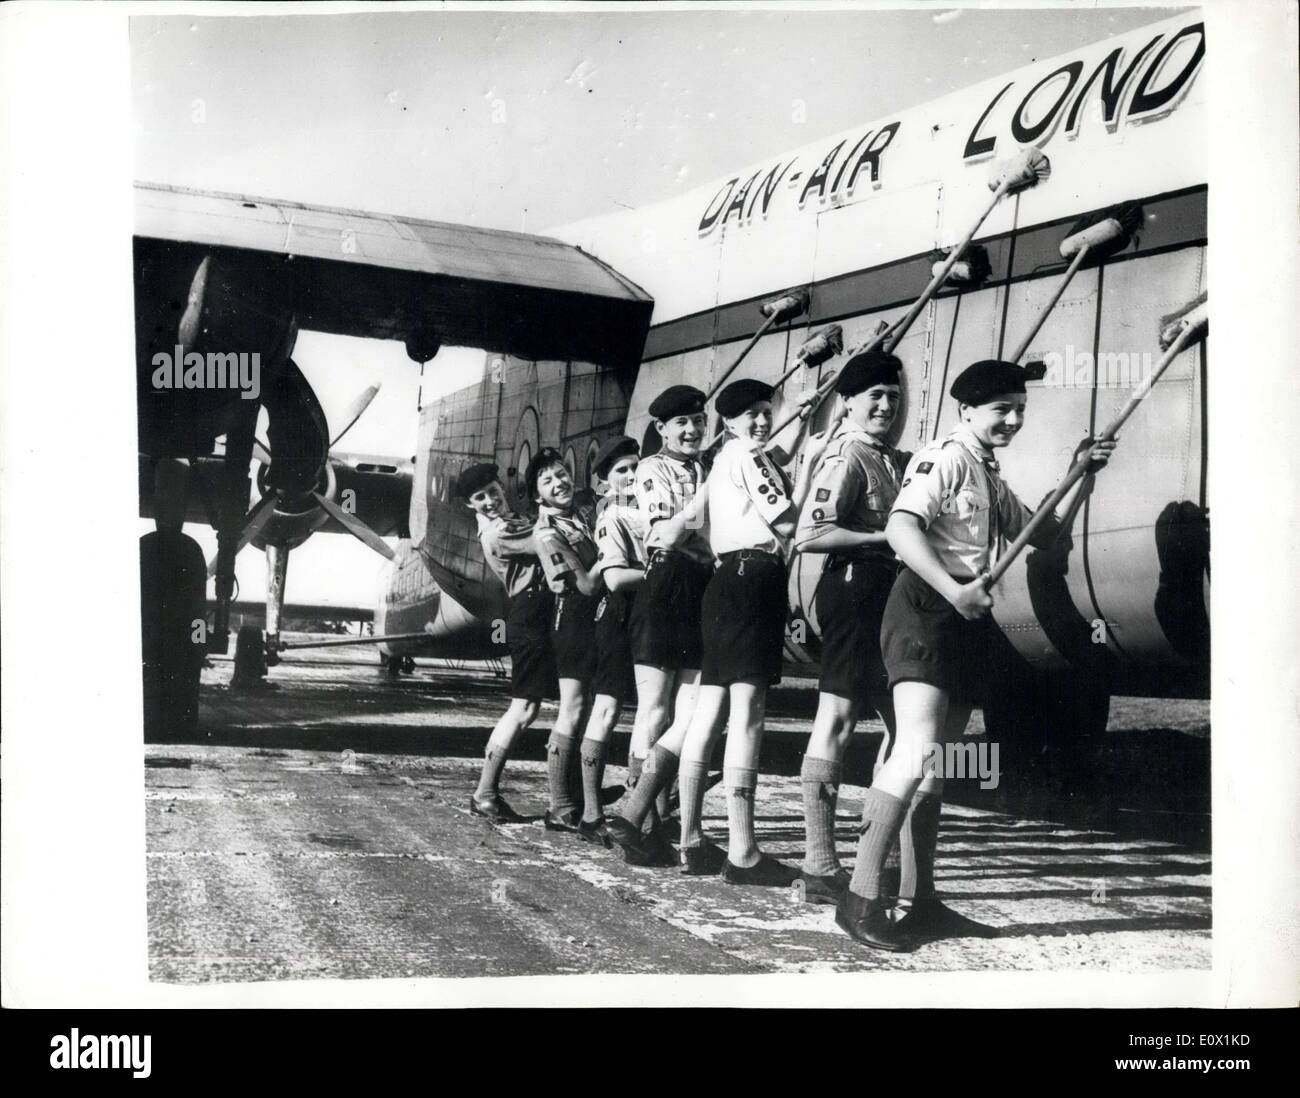 Oct. 24, 1964 - Last of Yorks donated to air scouts.: An historic era in World War 11 aviations came to an end at Lashem Airfield, Hants, today, when the last of the famous Avro Works was retired from Dan-Air Services Airline and donated to the Boy Scouts. The York, once a veteran of R.A.F. Air Transport Command, flew many wartime missions since its construction in 1942. In recent years the York figured prominently in the Berlin Airlift and later flew planeloads of refugees from Hungary to the West - Stock Image